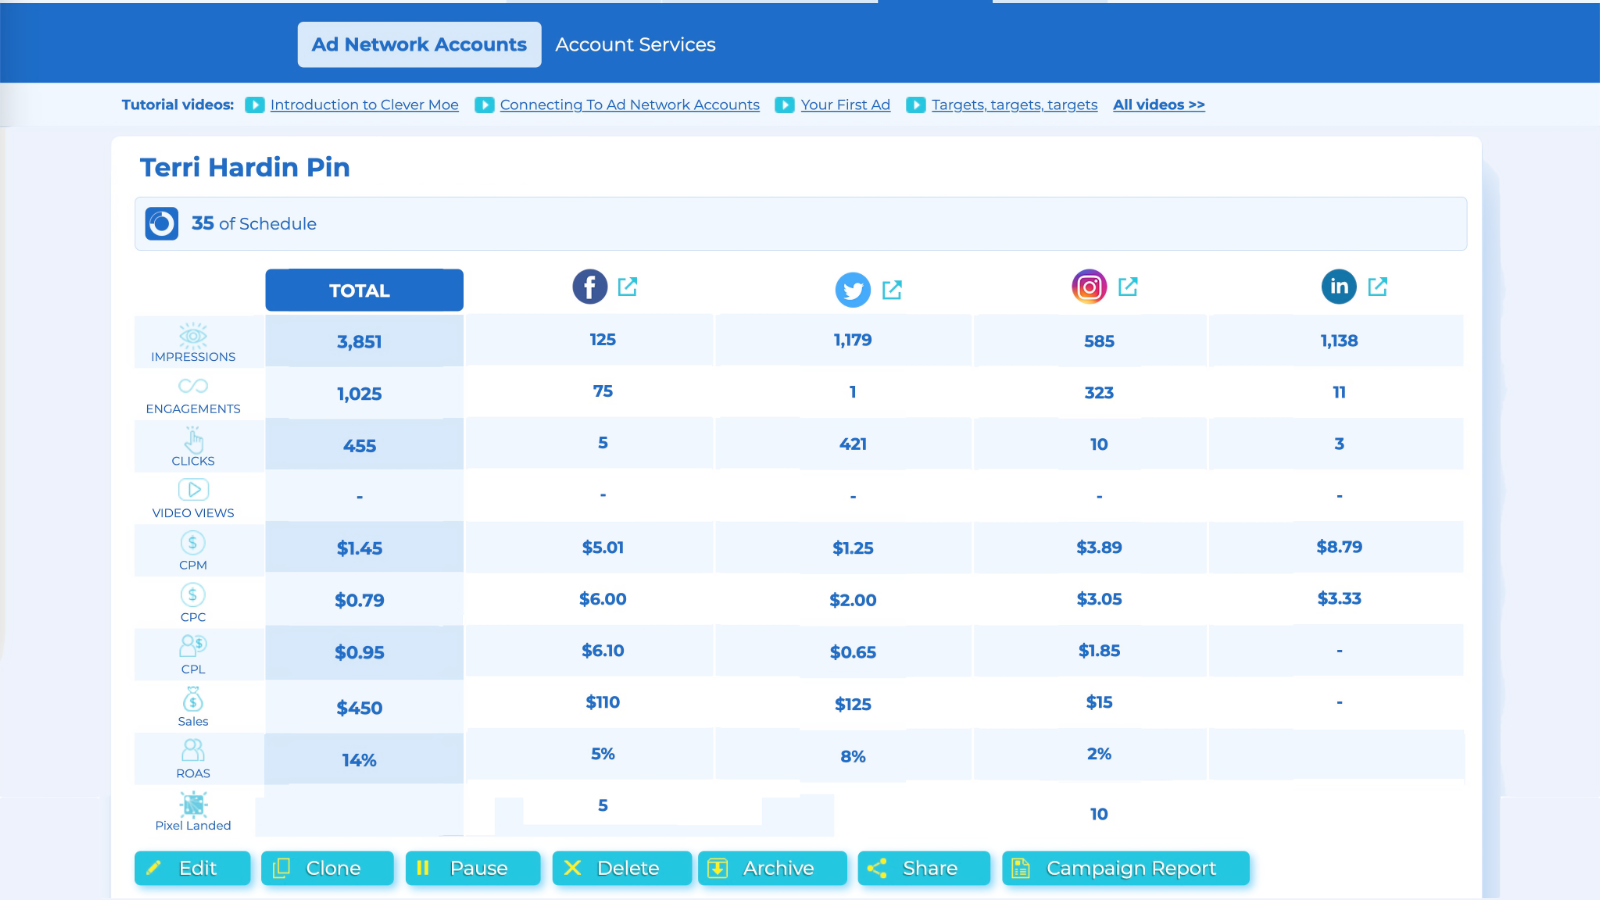 Clever Moe finds people on 6 ad networks already interested